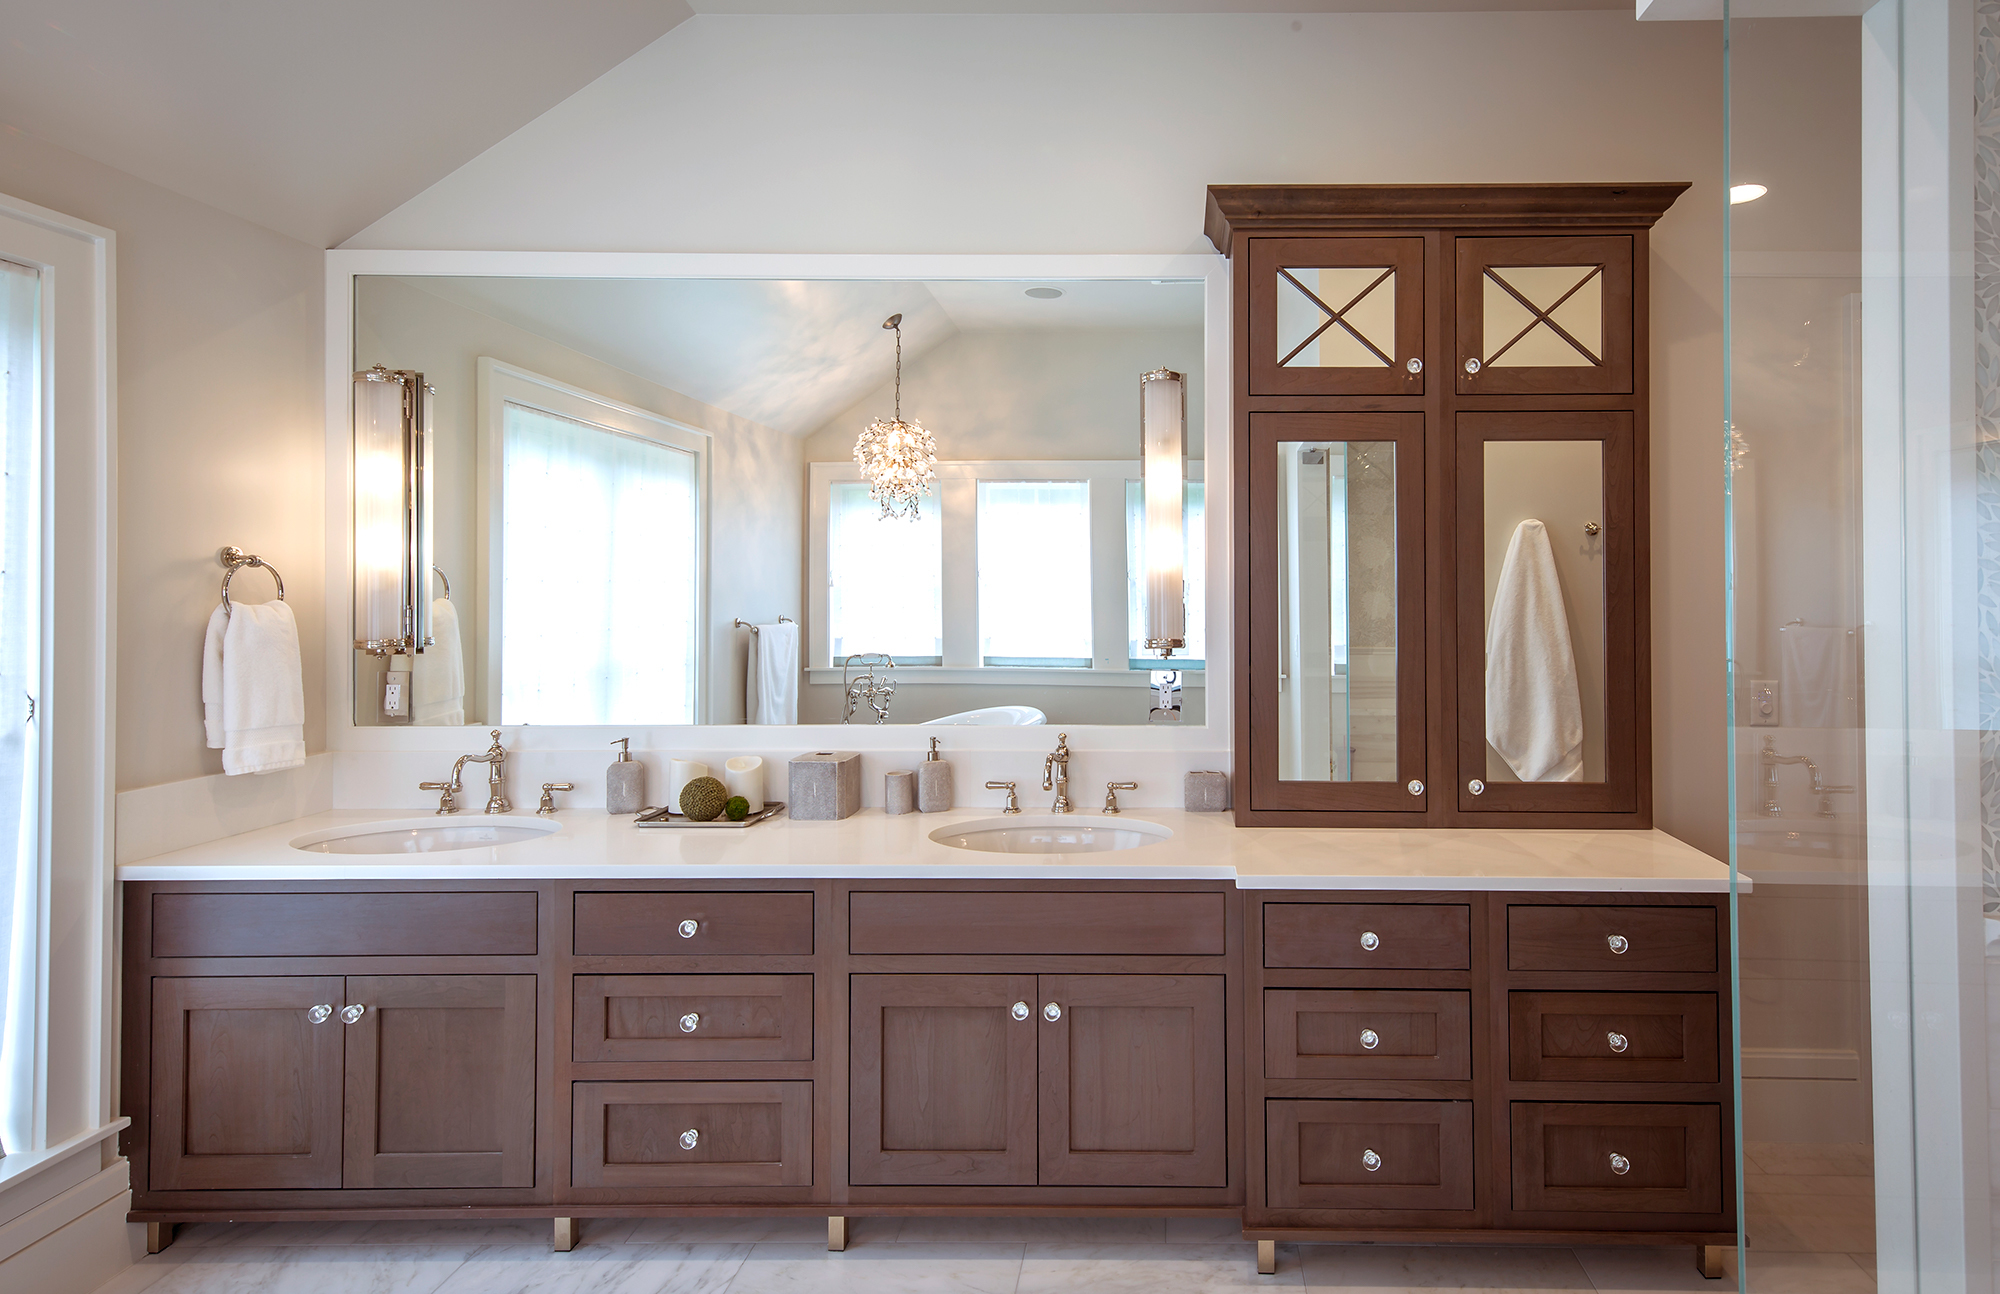 Stained Master Bathroom Cabinets in Rockport by Showplace Cabinetry - View 1